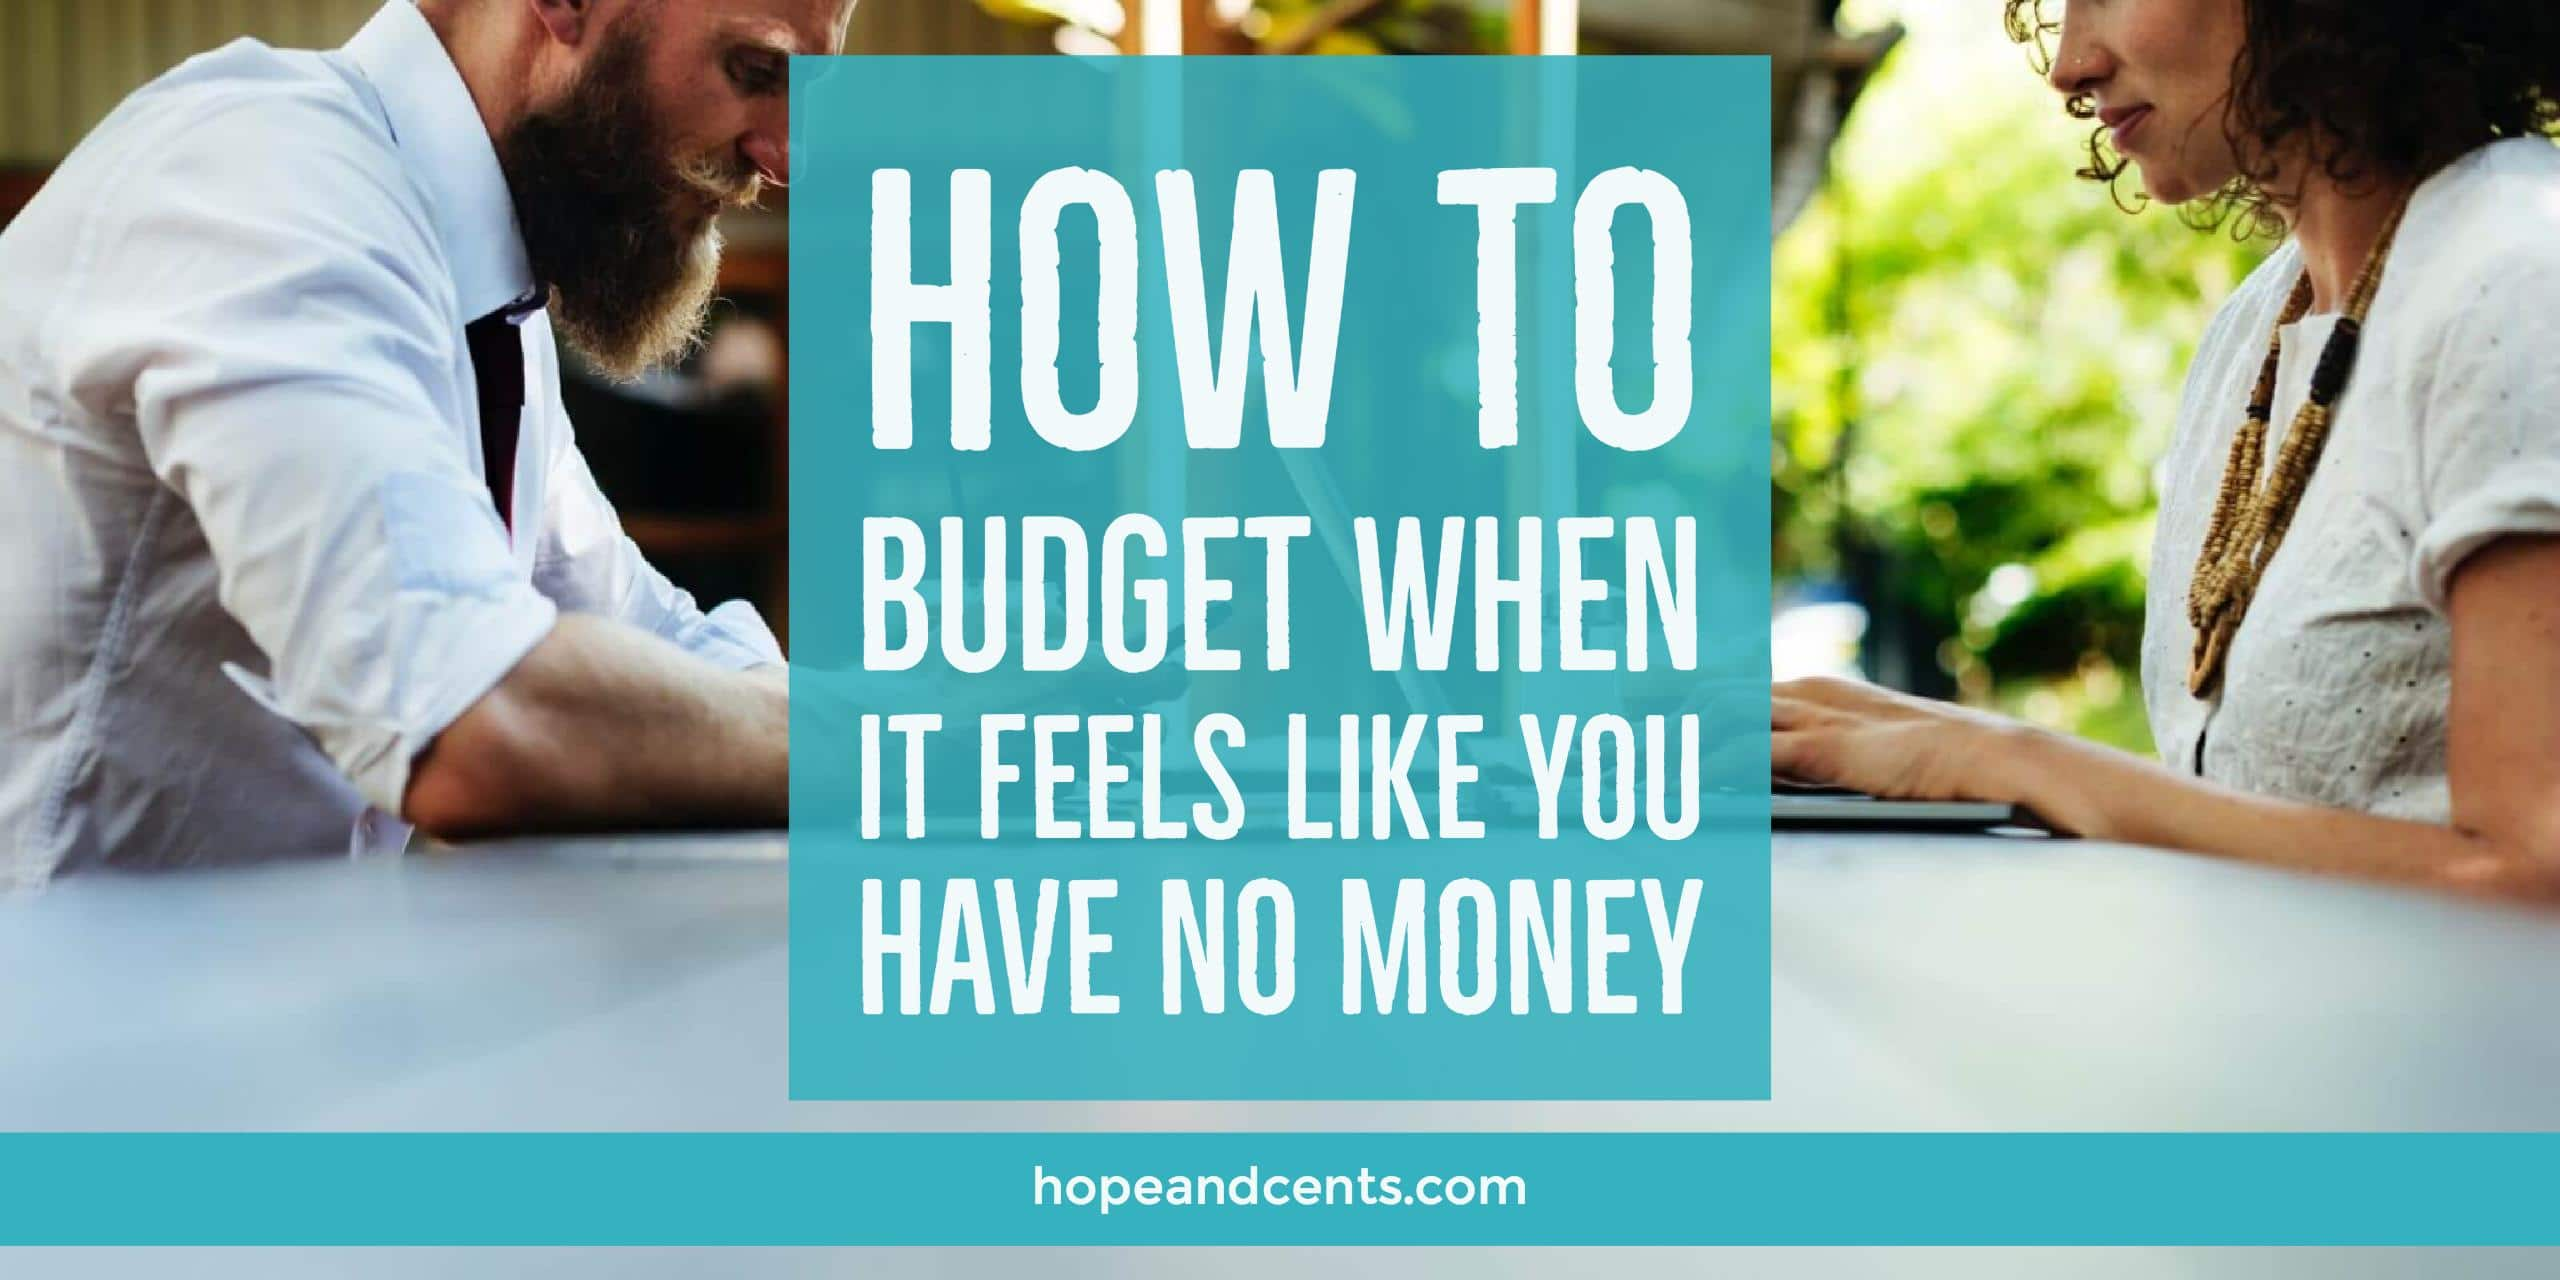 how to budget when it feels like you have no money